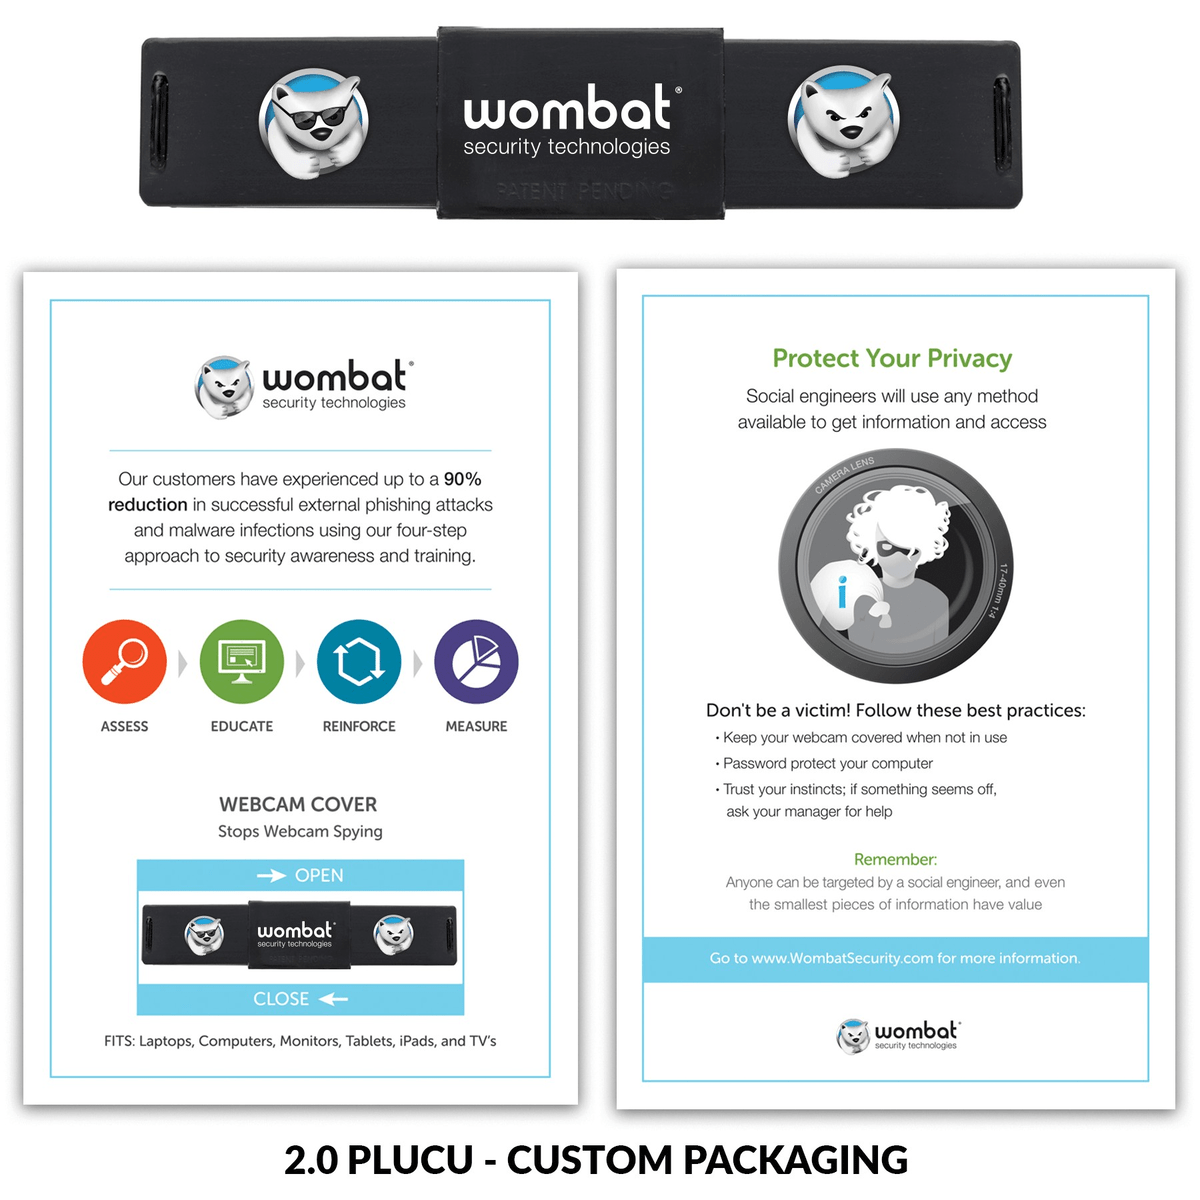 2.0 PLUS Webcam Cover with 3 Imprints & Custom Packaging